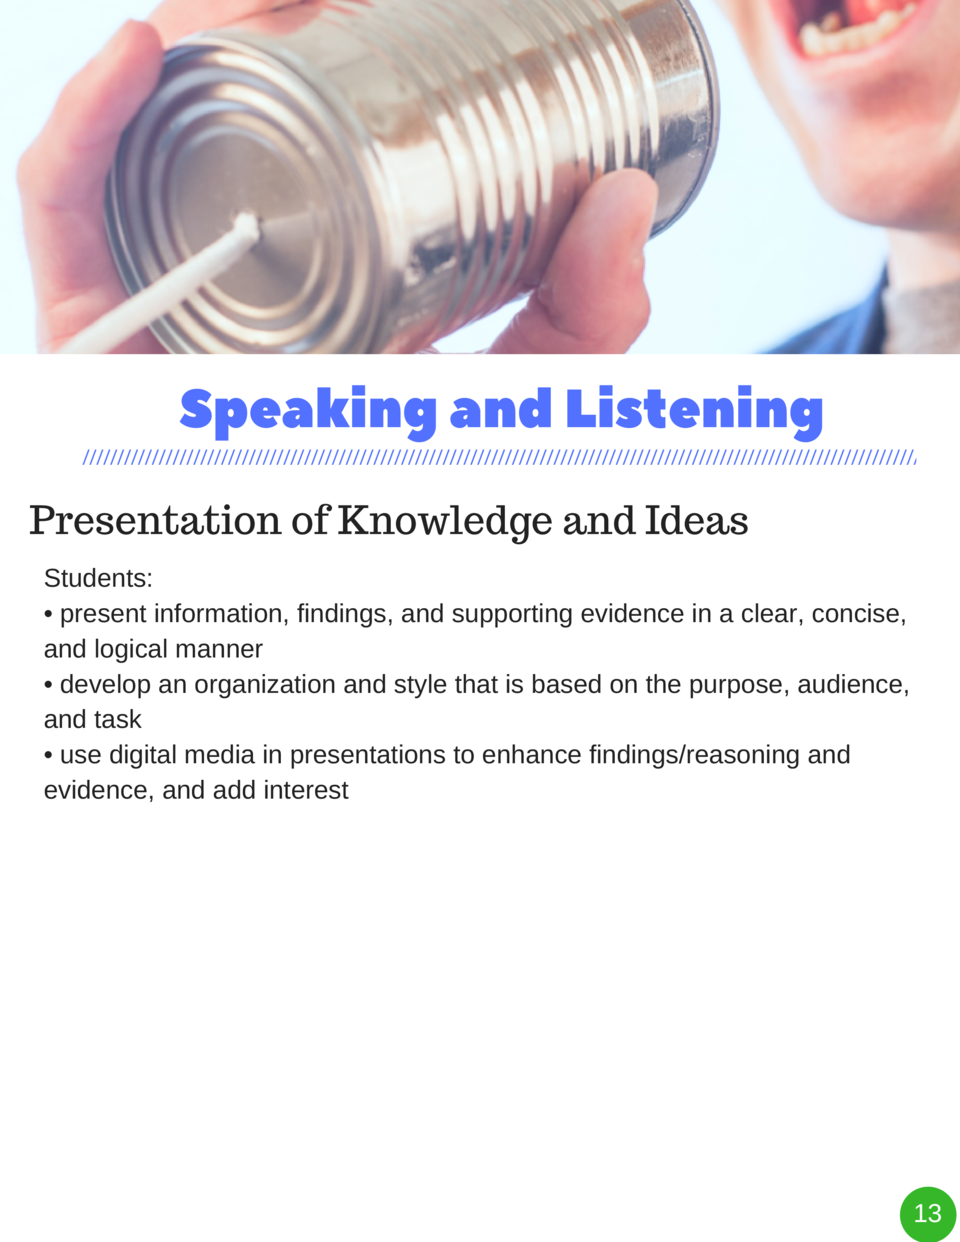 Speaking and Listening Presentation of Knowledge and Ideas Students      present information, findings, and supporting evi...